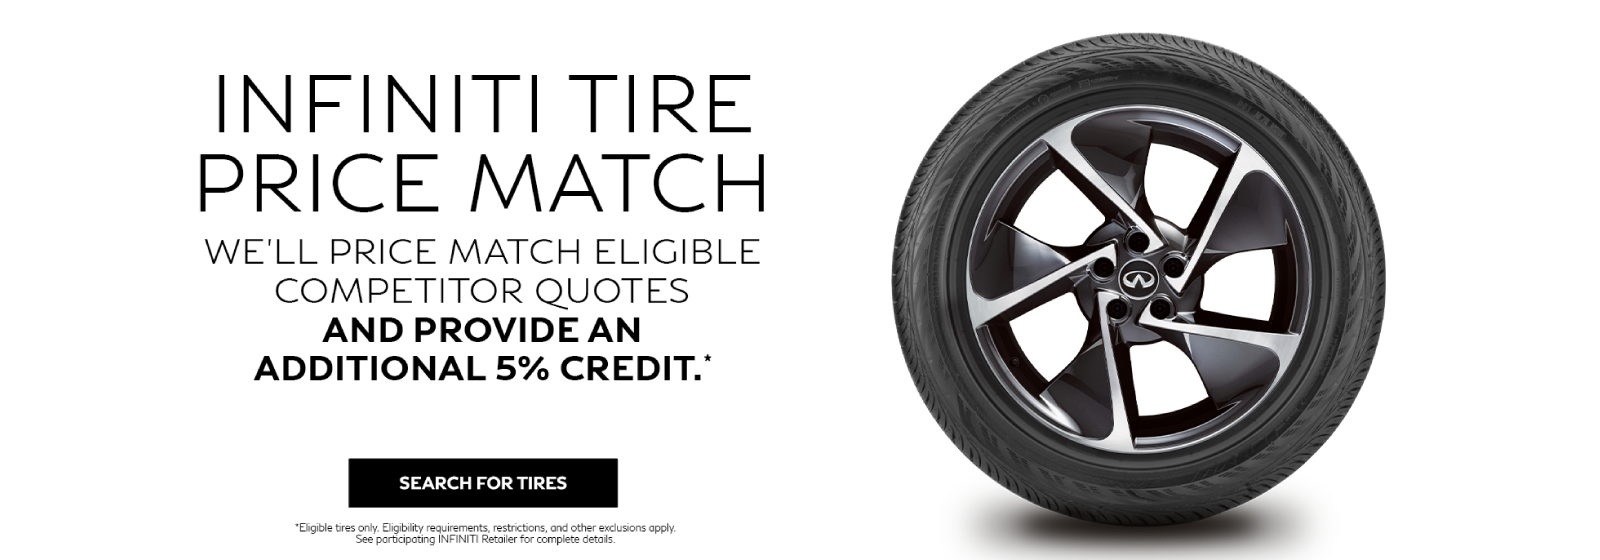 Tire Price Match. See retailer for complete details.